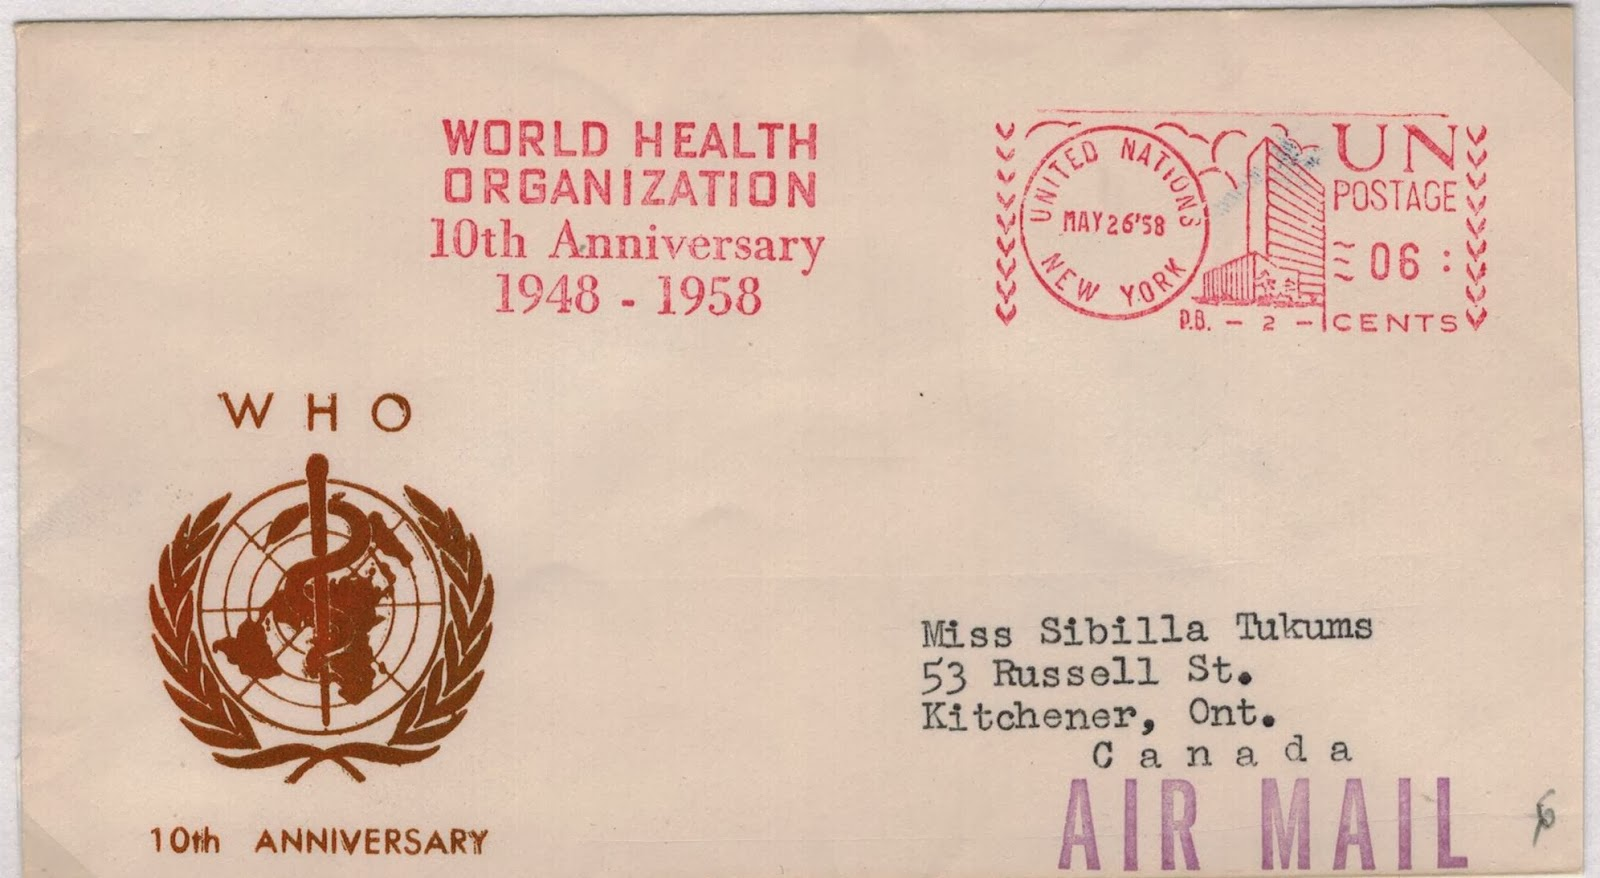 Postal history corner world health organization new headquarters the world health organization who headquartered in geneva switzerland was founded in 1948 as a specialized agency of the united nations serving as biocorpaavc